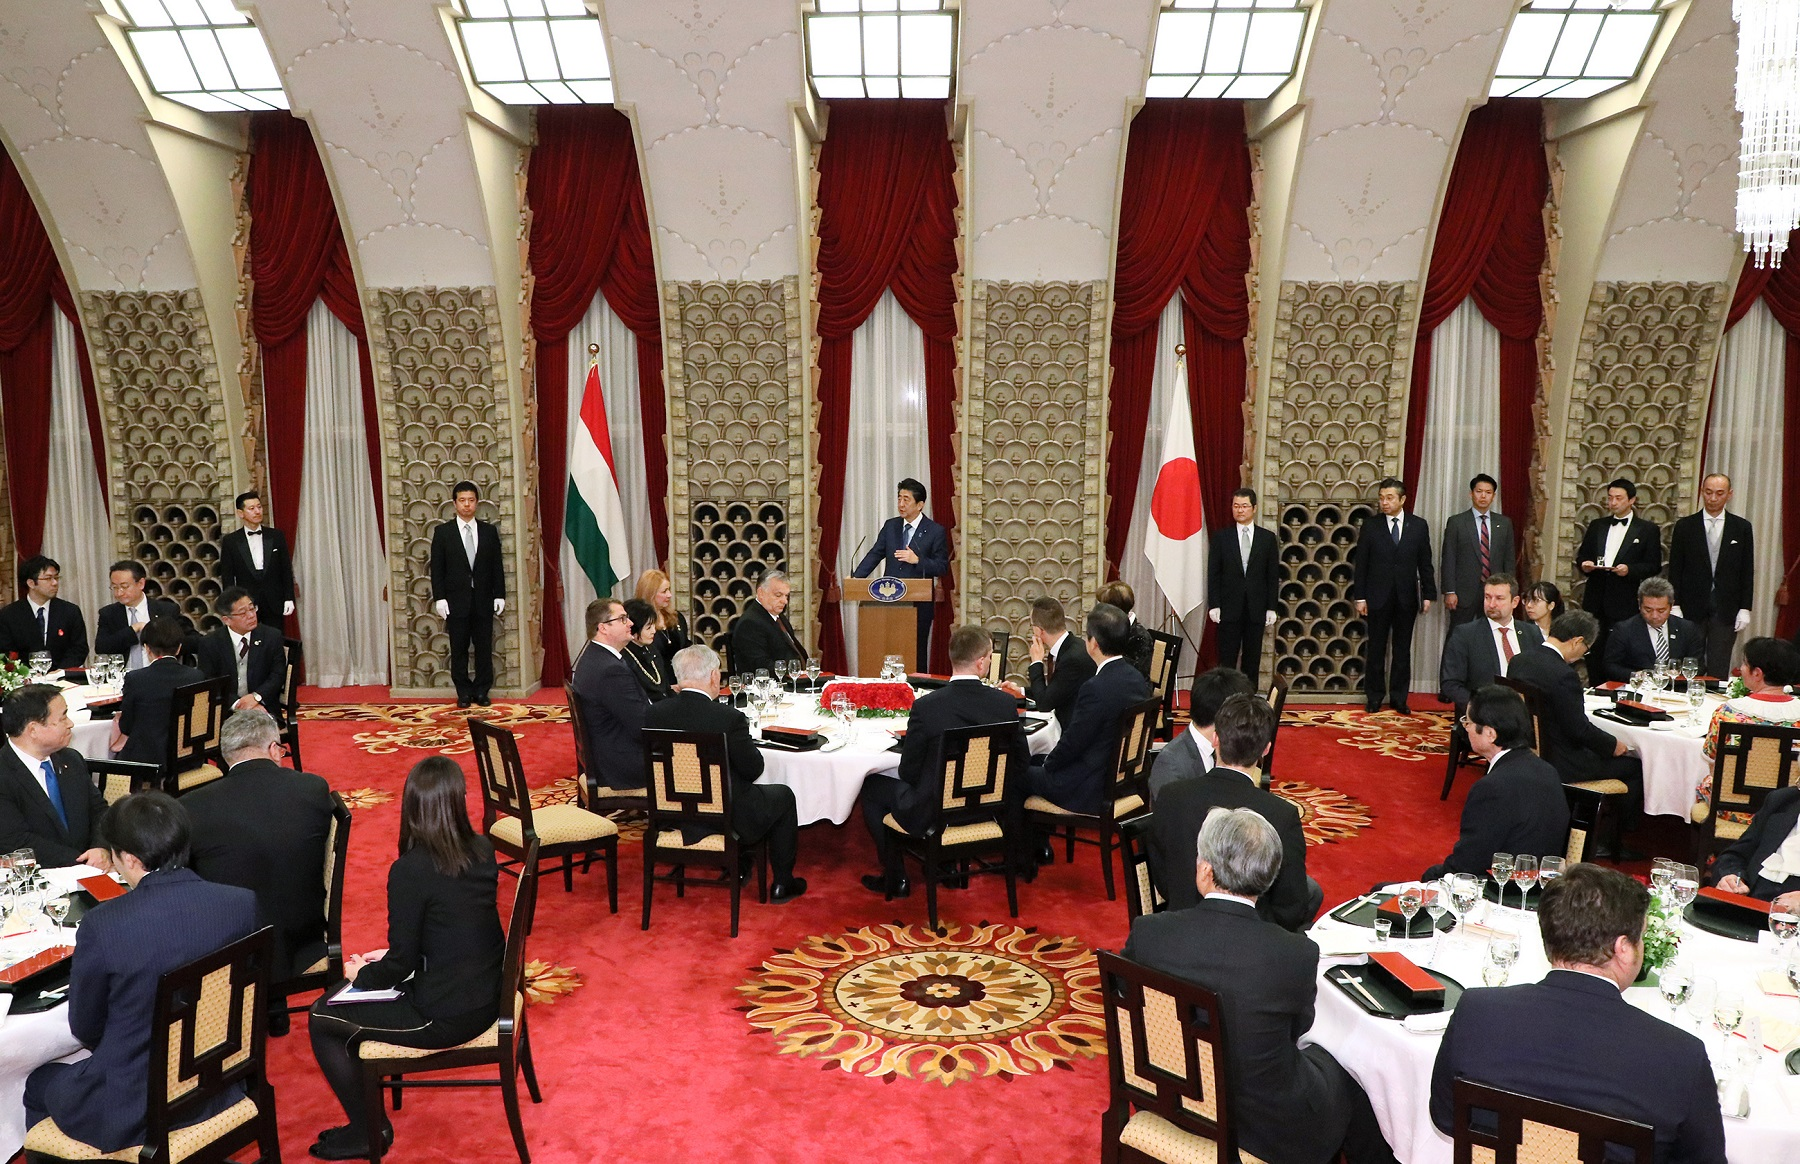 Photograph of the Prime Minister delivering an address at the banquet hosted by the Prime Minister (4)